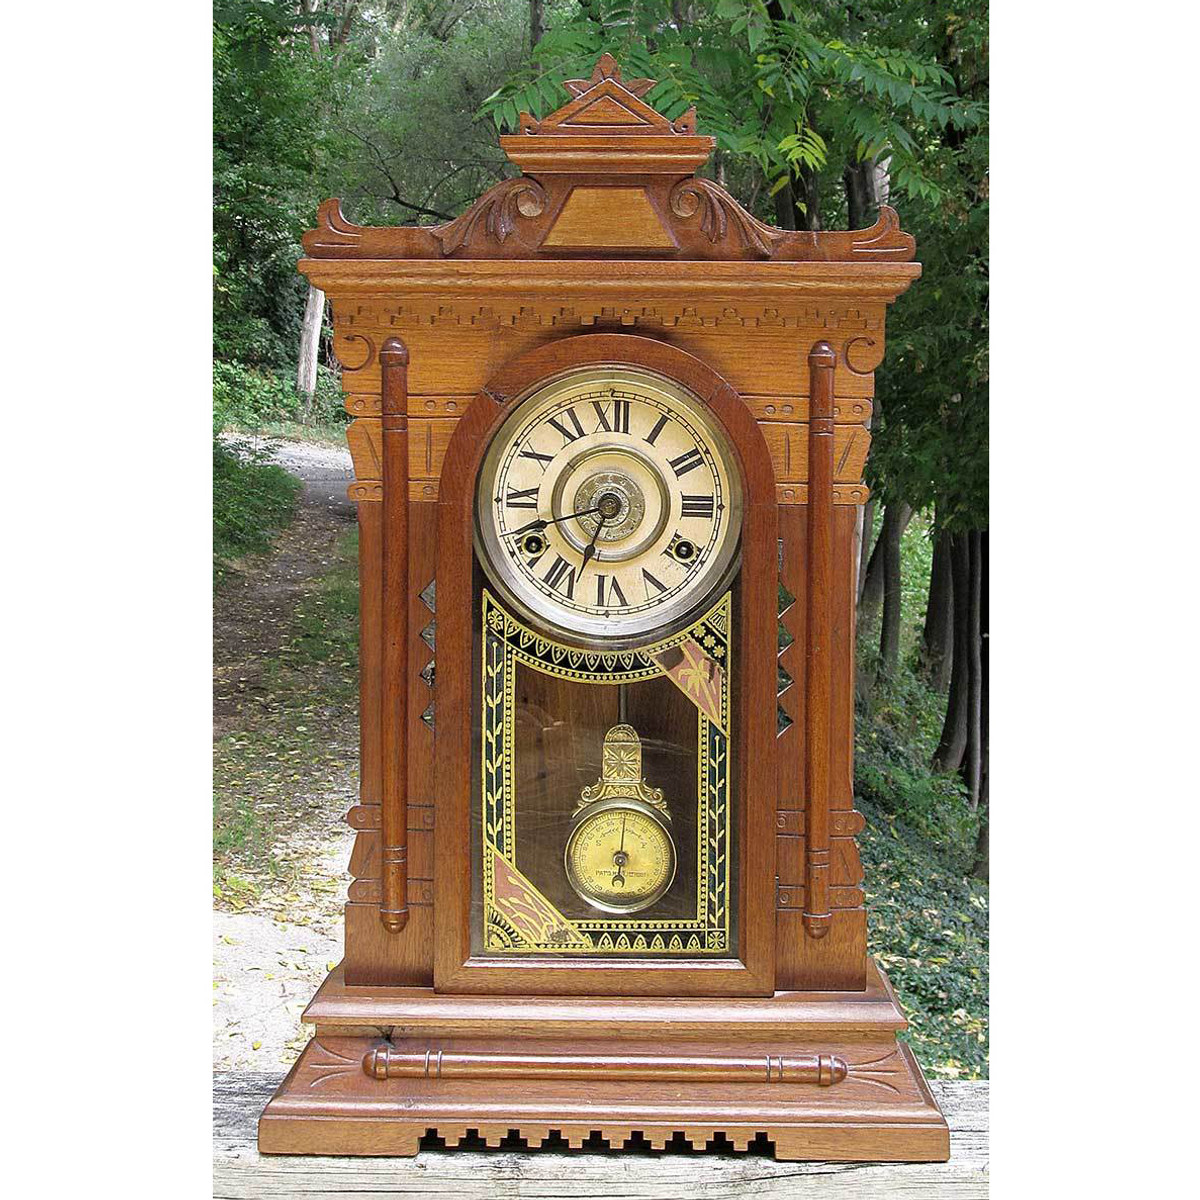 A13150 - Antique Renaissance Revival Walnut Shelf Clock